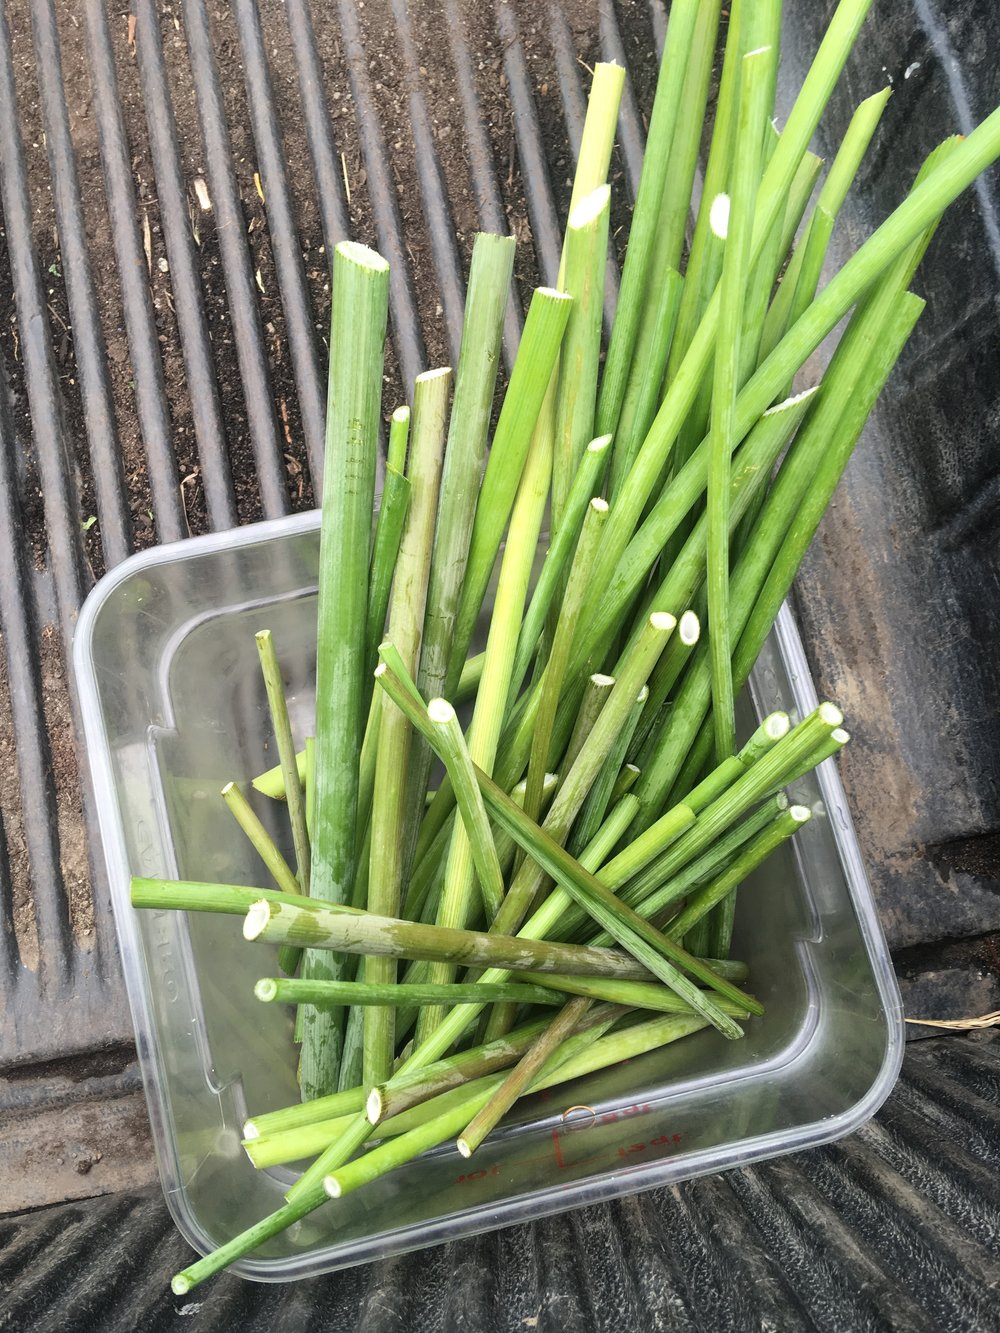 Future lovage straws